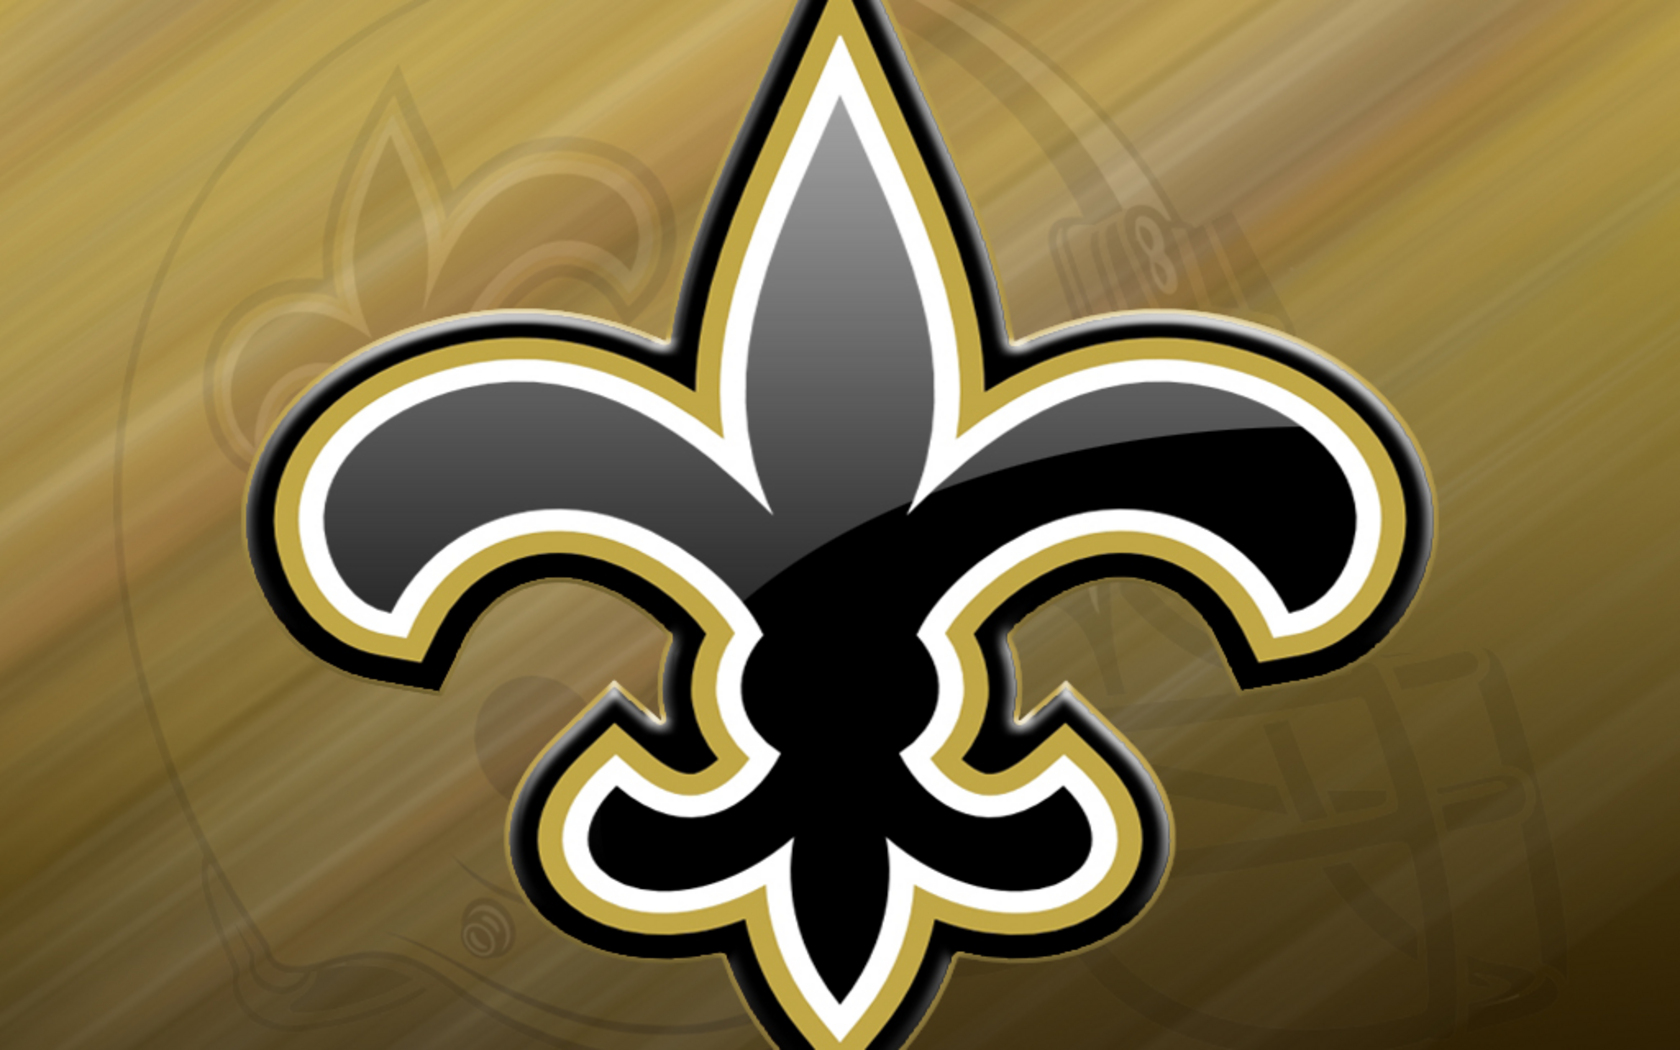 Free Download The Day New Orleans Saints Wallpaper New Orleans